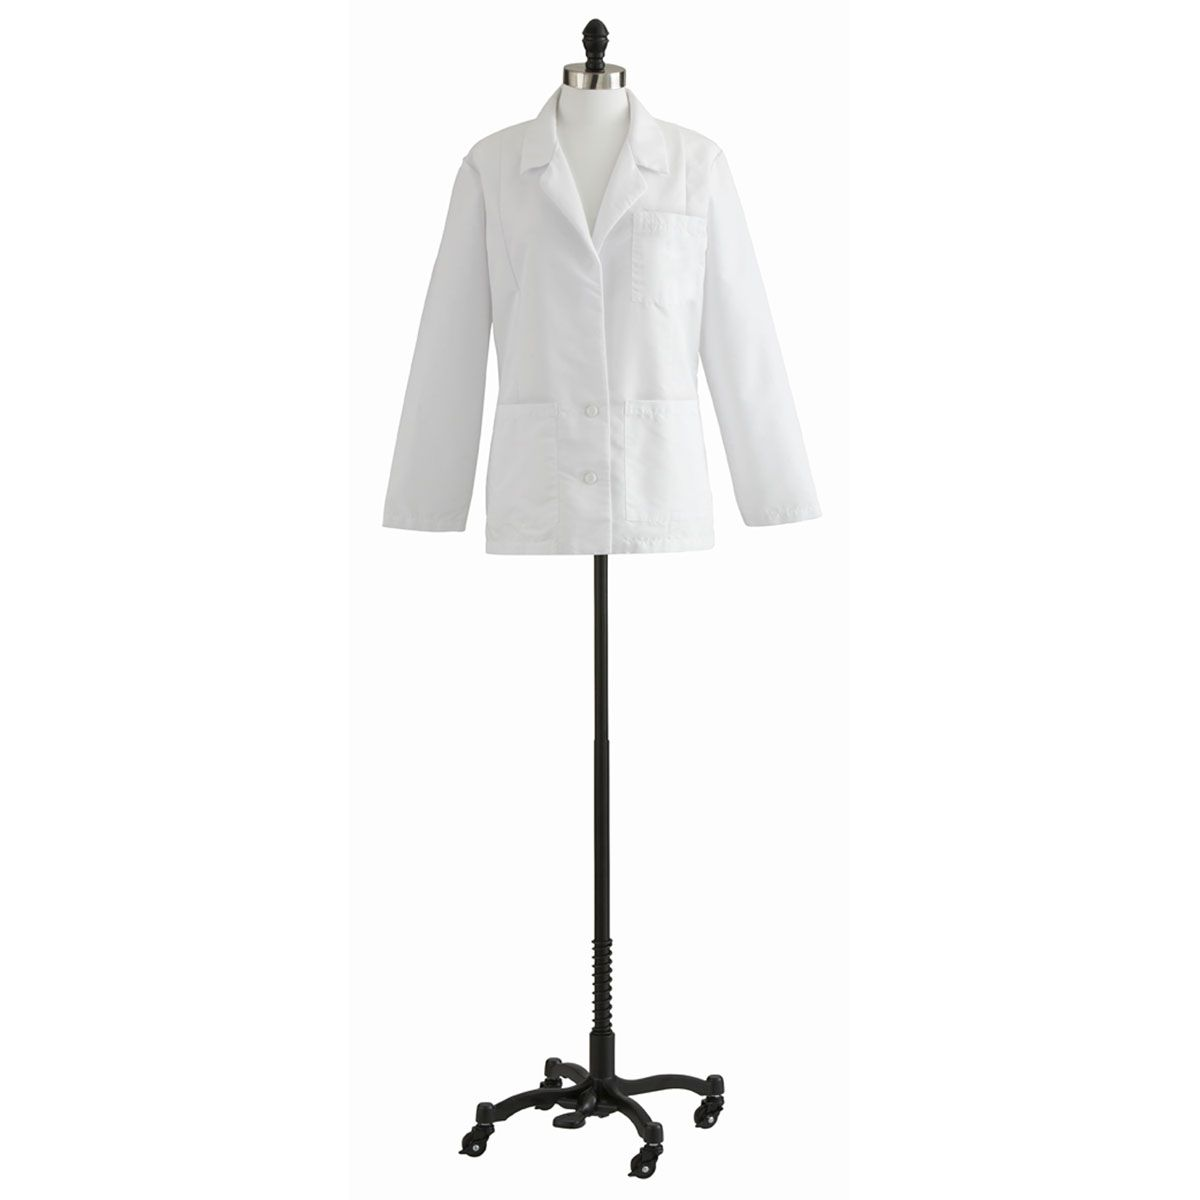 Medline Ladies Consultation Coat - White, 22, Each - Model 88018QHW22